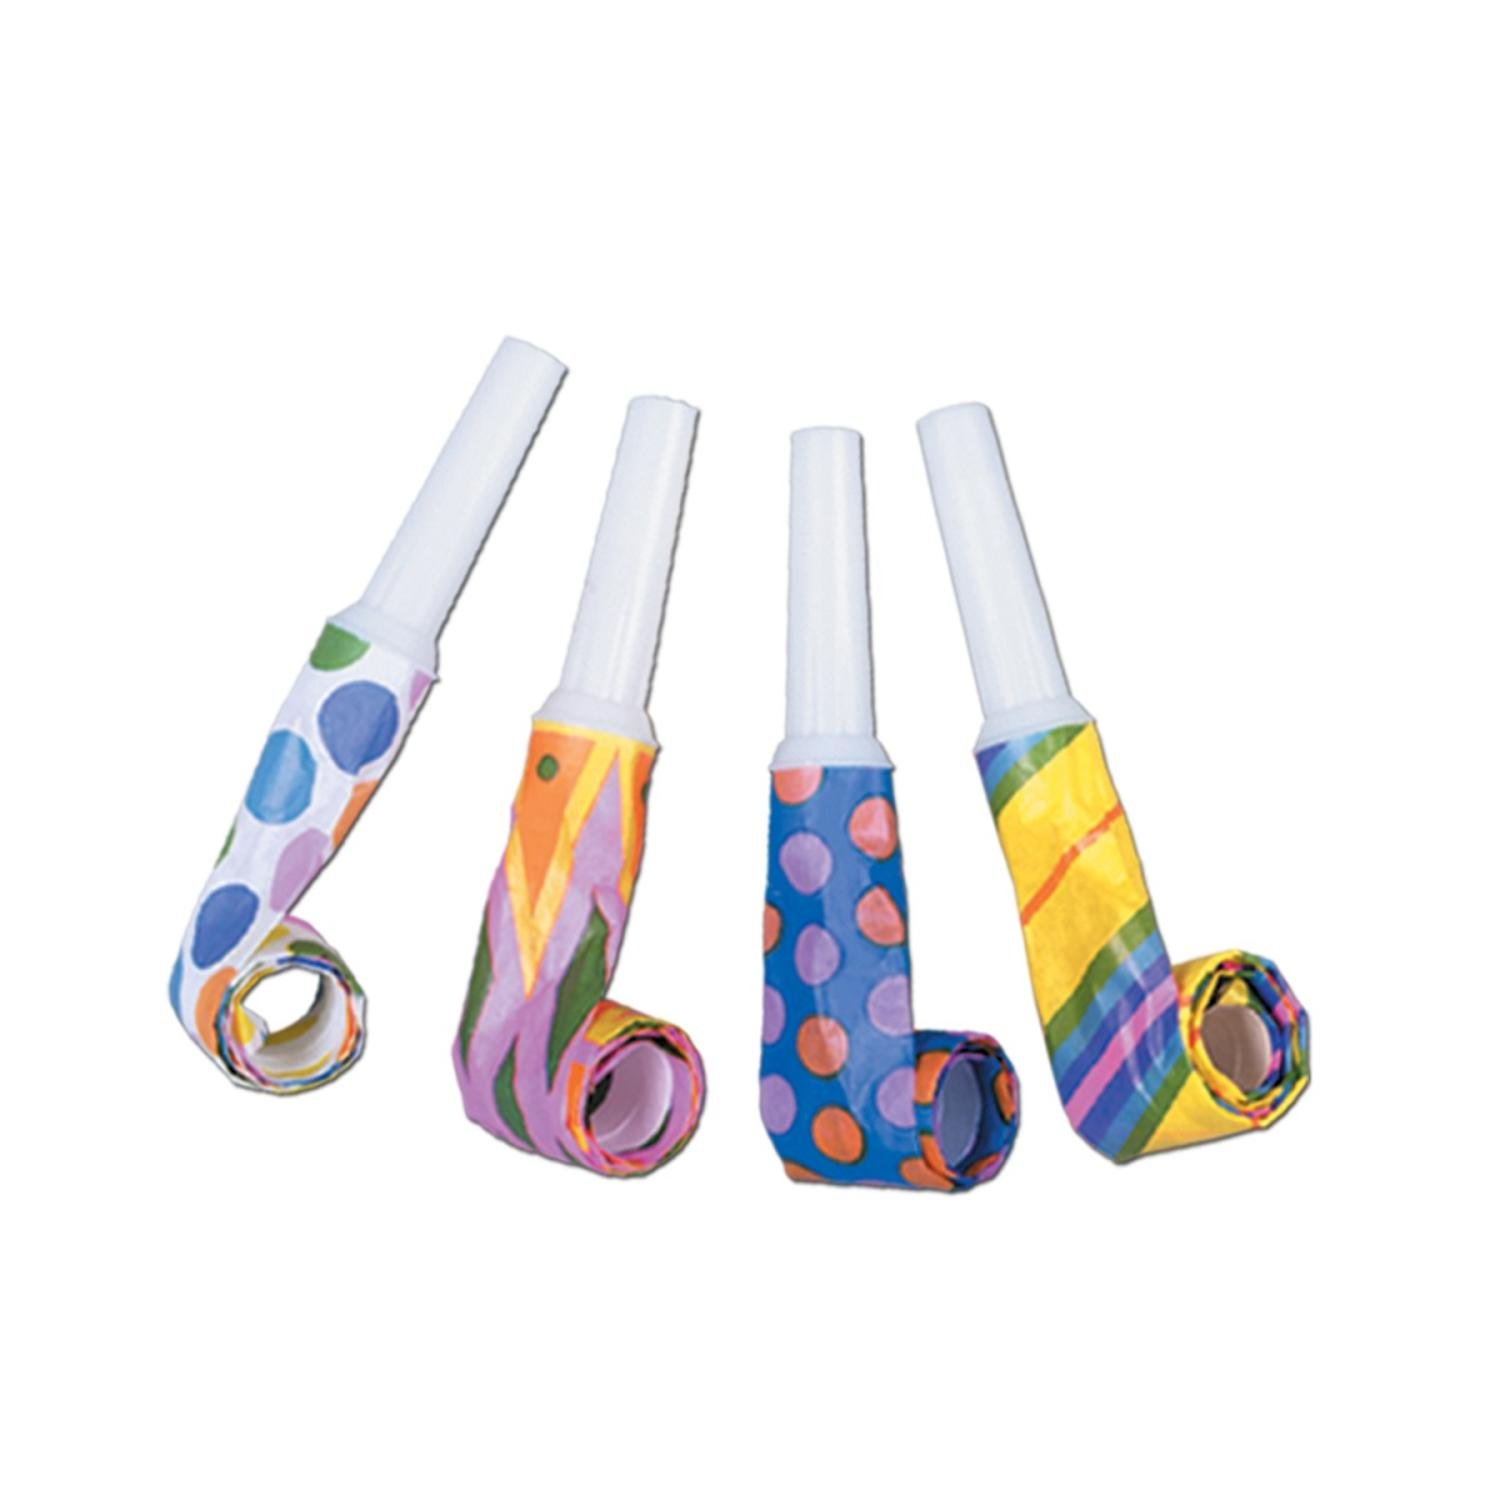 Club Pack of 192 Multi-Colored Noisemaker Blowout Party Accessories